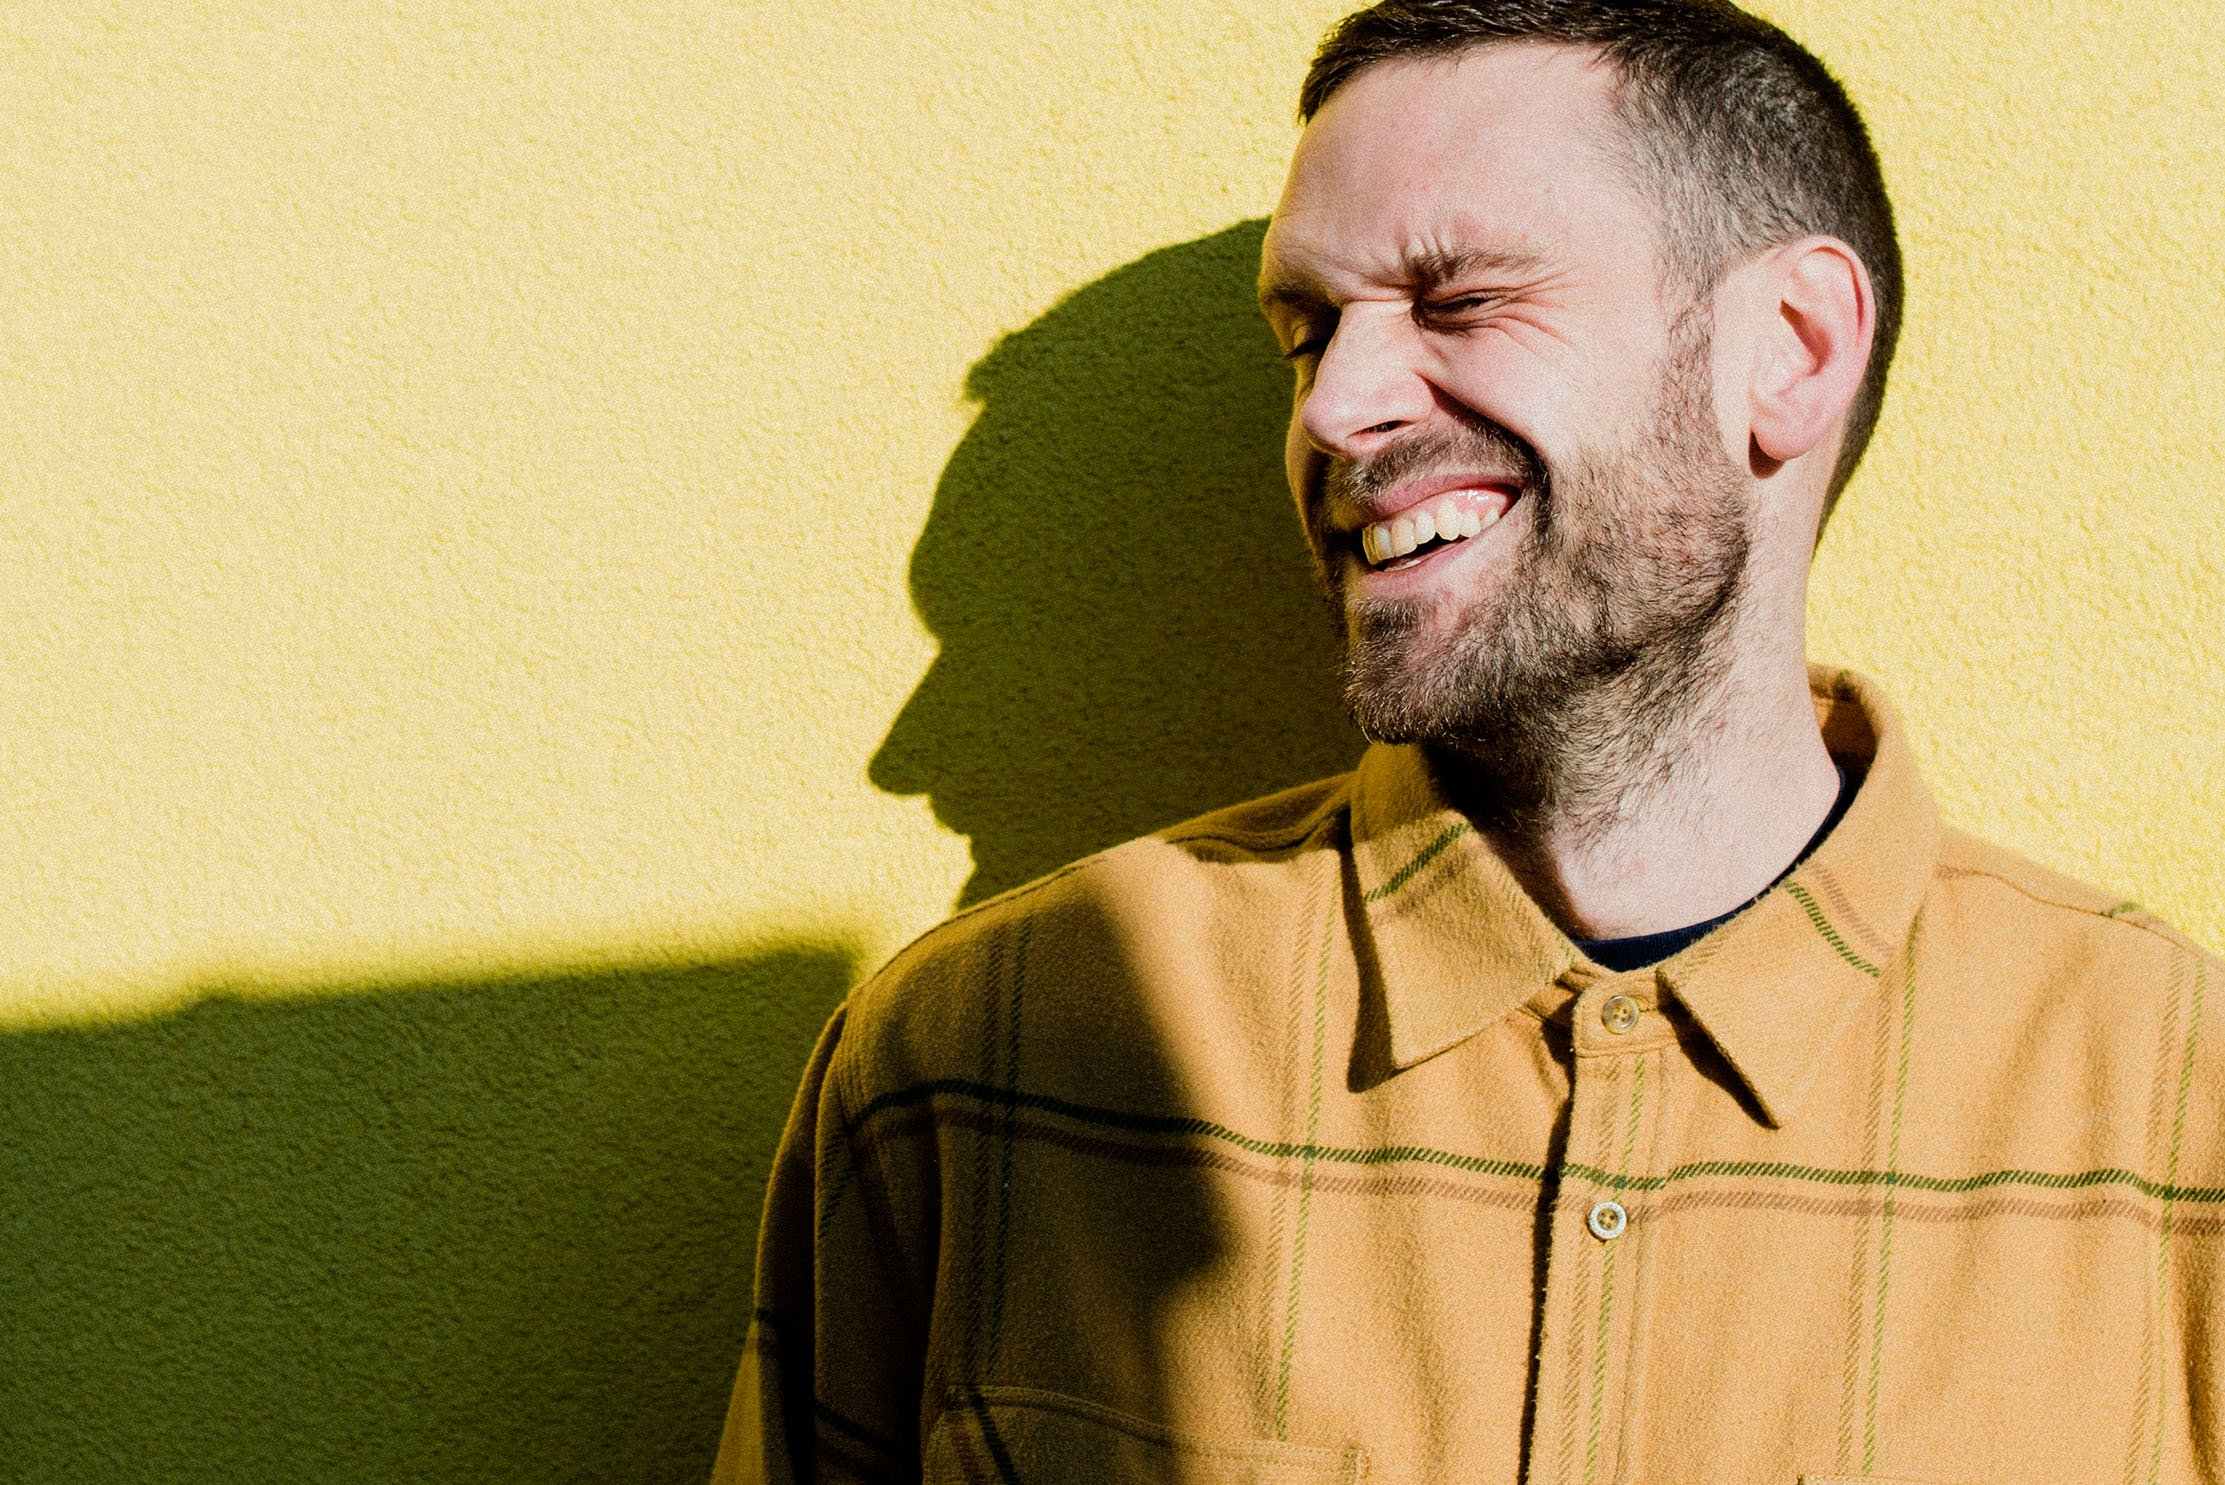 Bn1 talks to Tru Thoughts local hero J-Felix, ahead of his new album, Whole Again Hooligan, being released on the Fri 6 March, and a launch show at Brighton's Patterns on Sat 14 March 2020